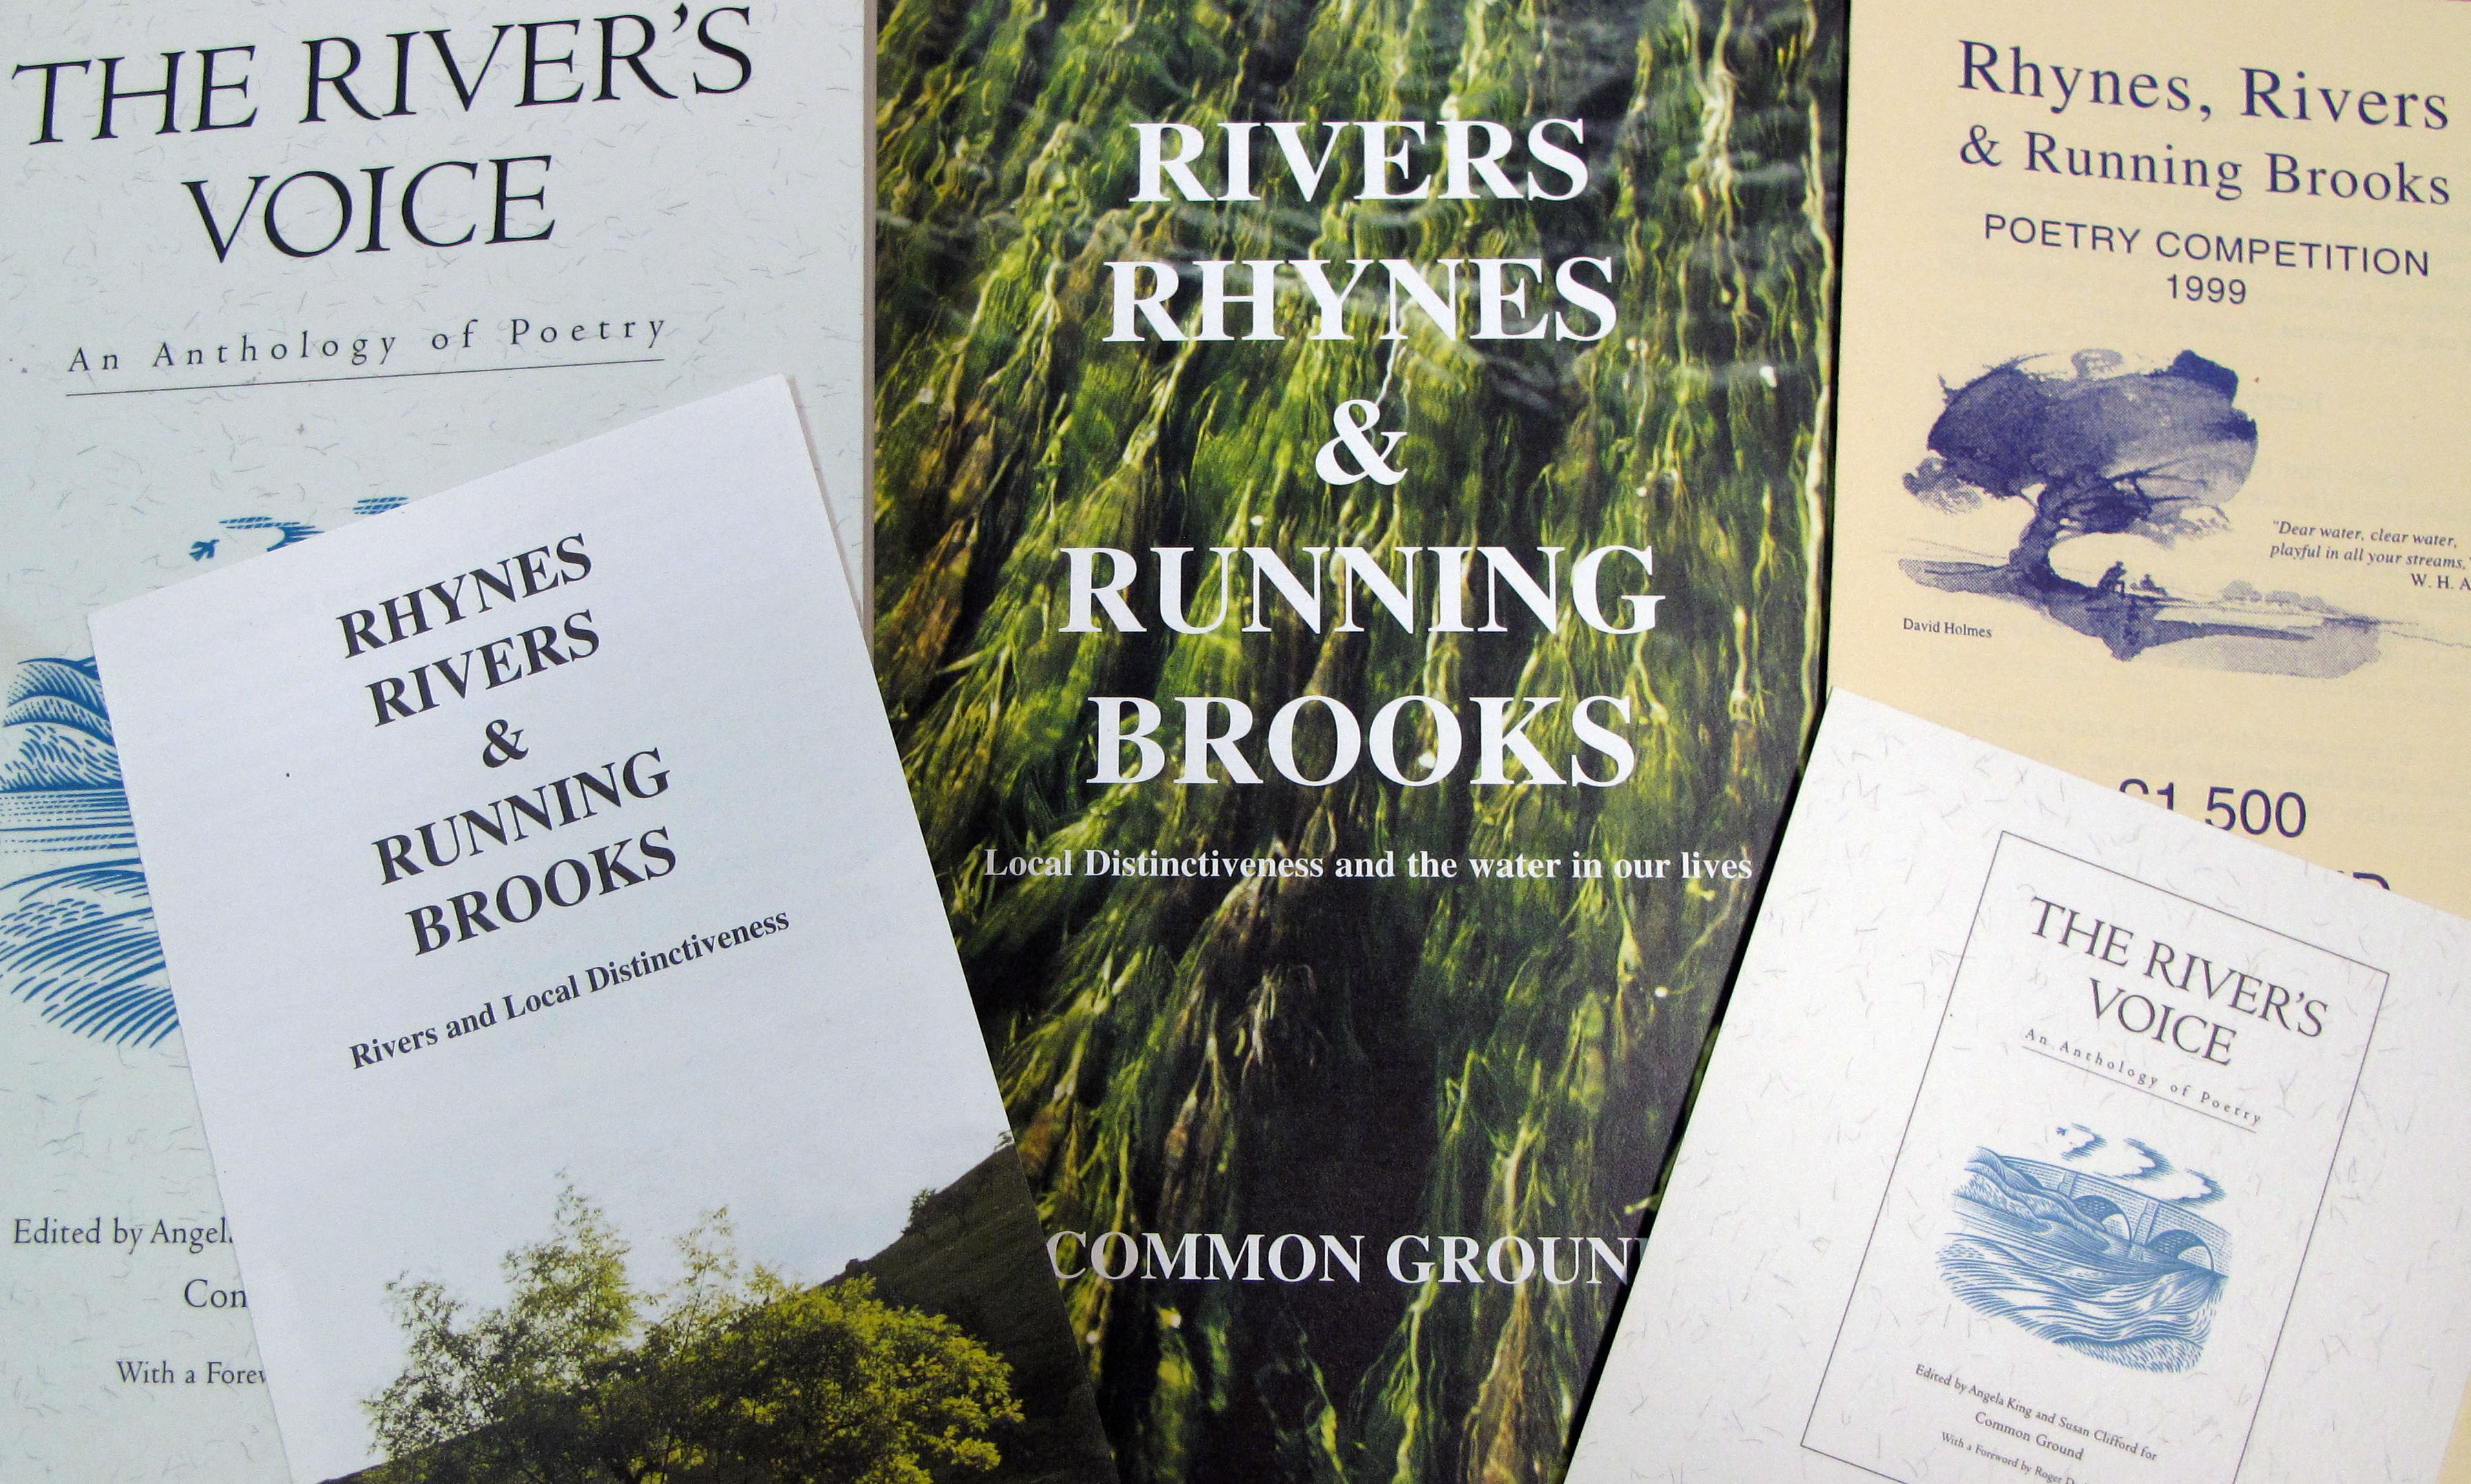 EUL MS 416/PRO/12 - Archive material relating to the 'Rhynes, Rivers and Running Brooks' project